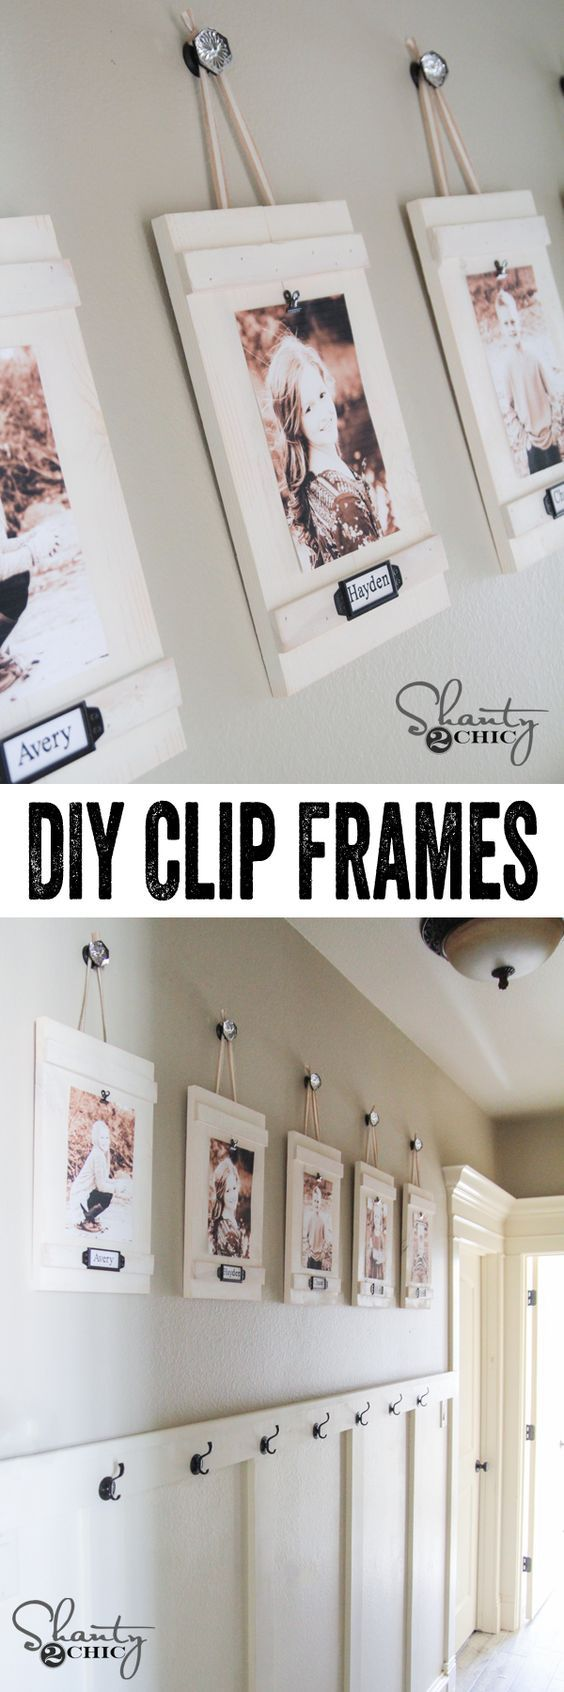 best 25 decorate picture frames ideas on pinterest wall hanging i love having each persons picture hanging up in frame this way simple clip frame tutorial by so cheap too